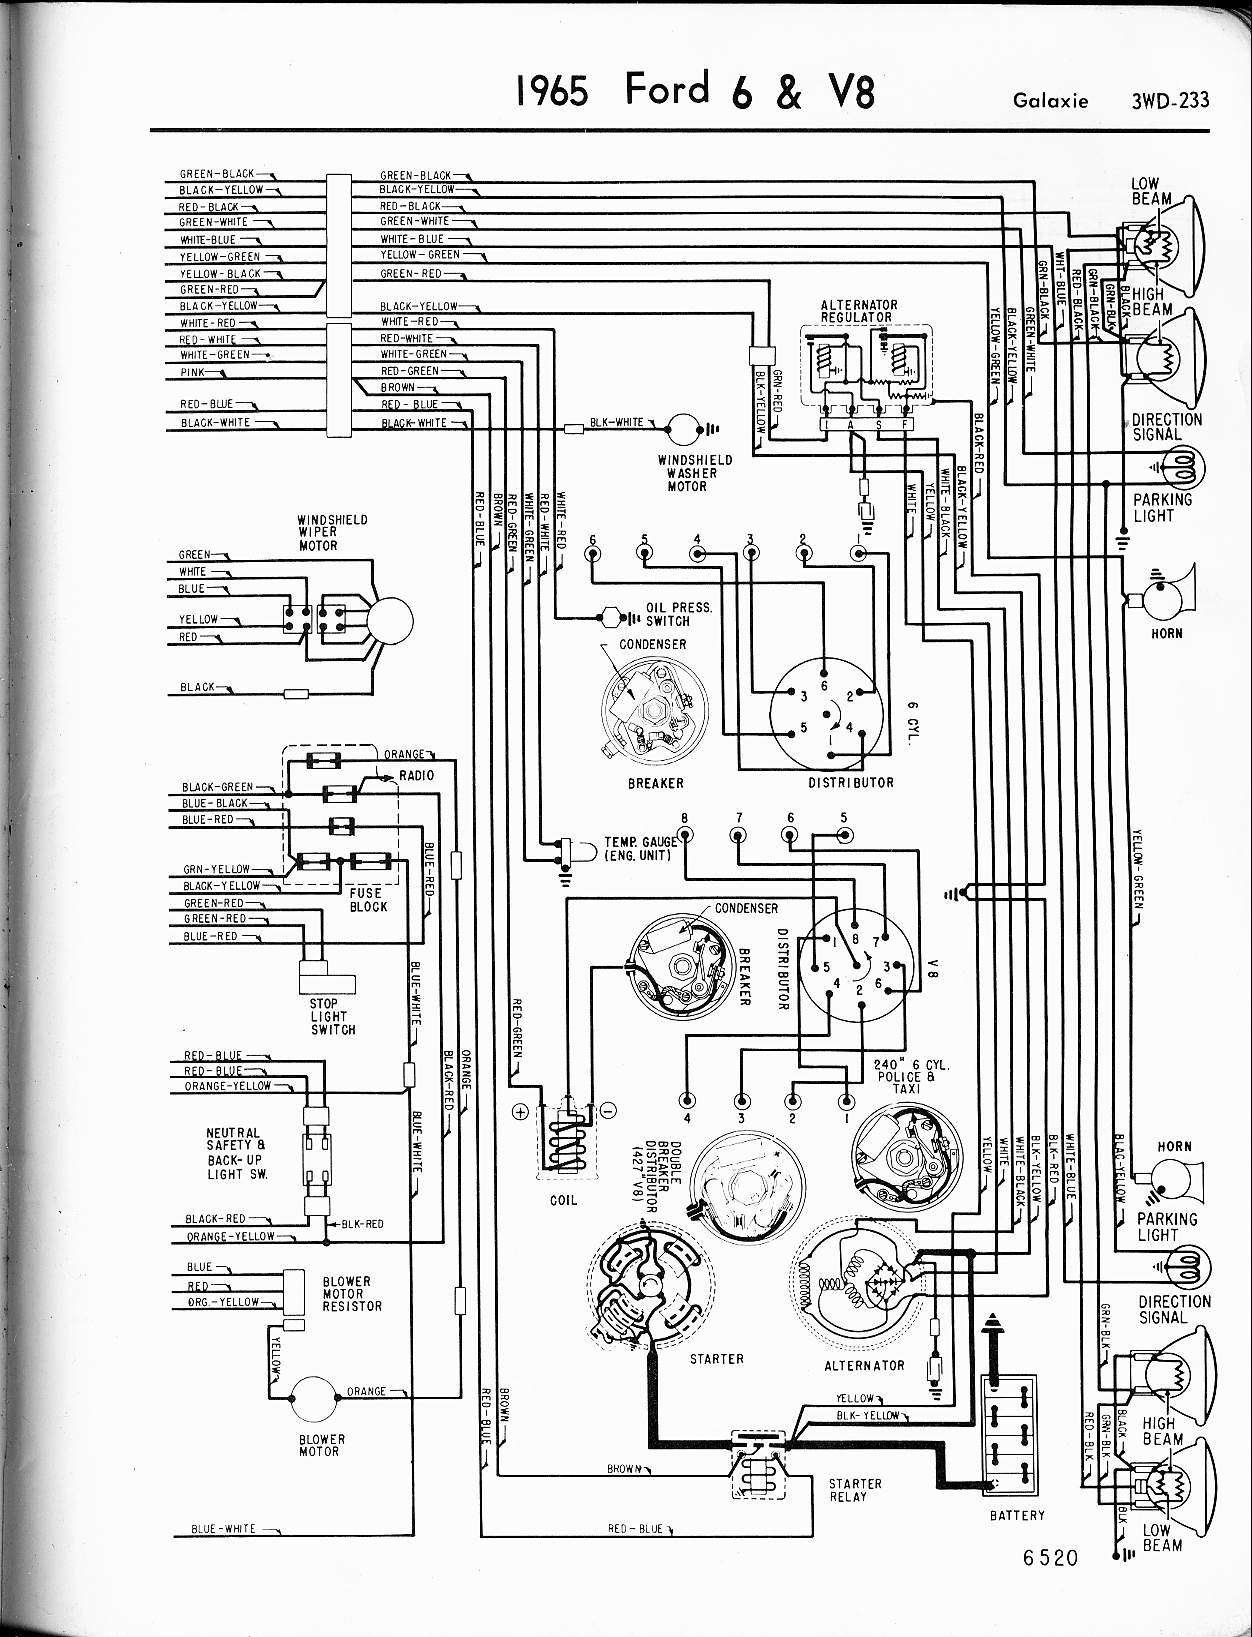 Ford wiring schematics ford wiring schematics wiring diagrams 1965 ford f100 wiring diagram asfbconference2016 Images